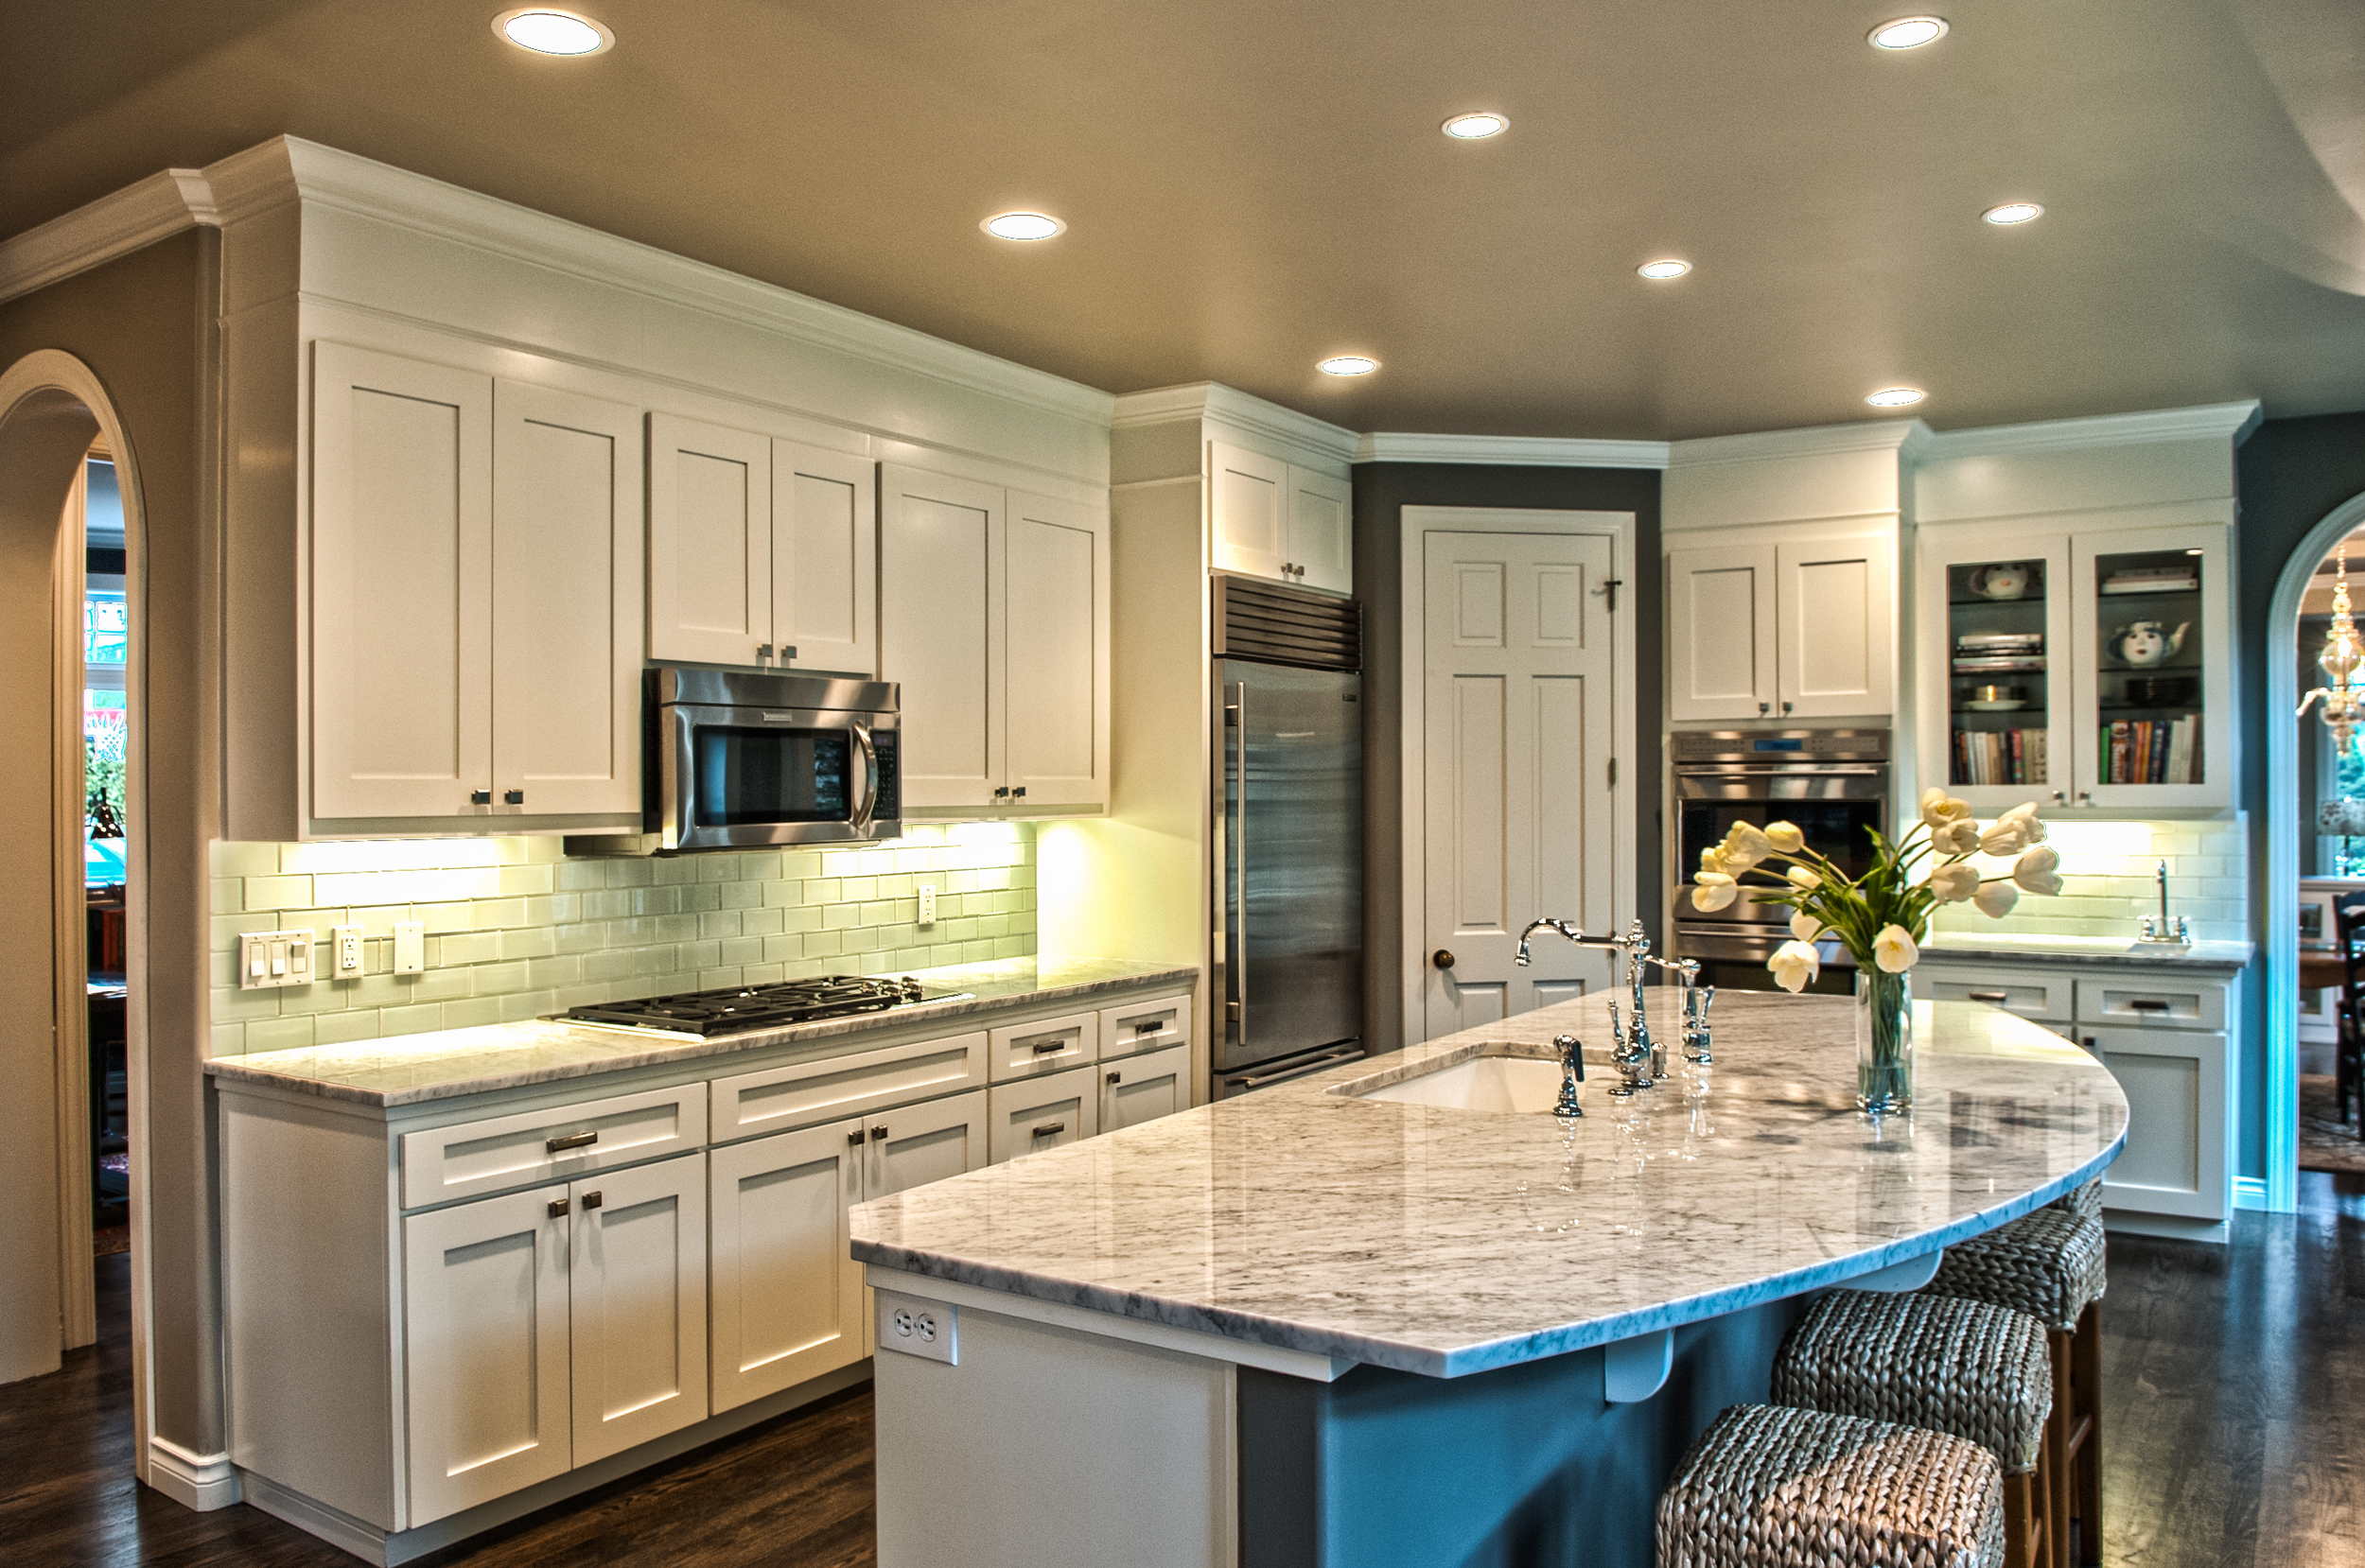 We love the finished Kitchen.   Clean, functional, updated and classic.